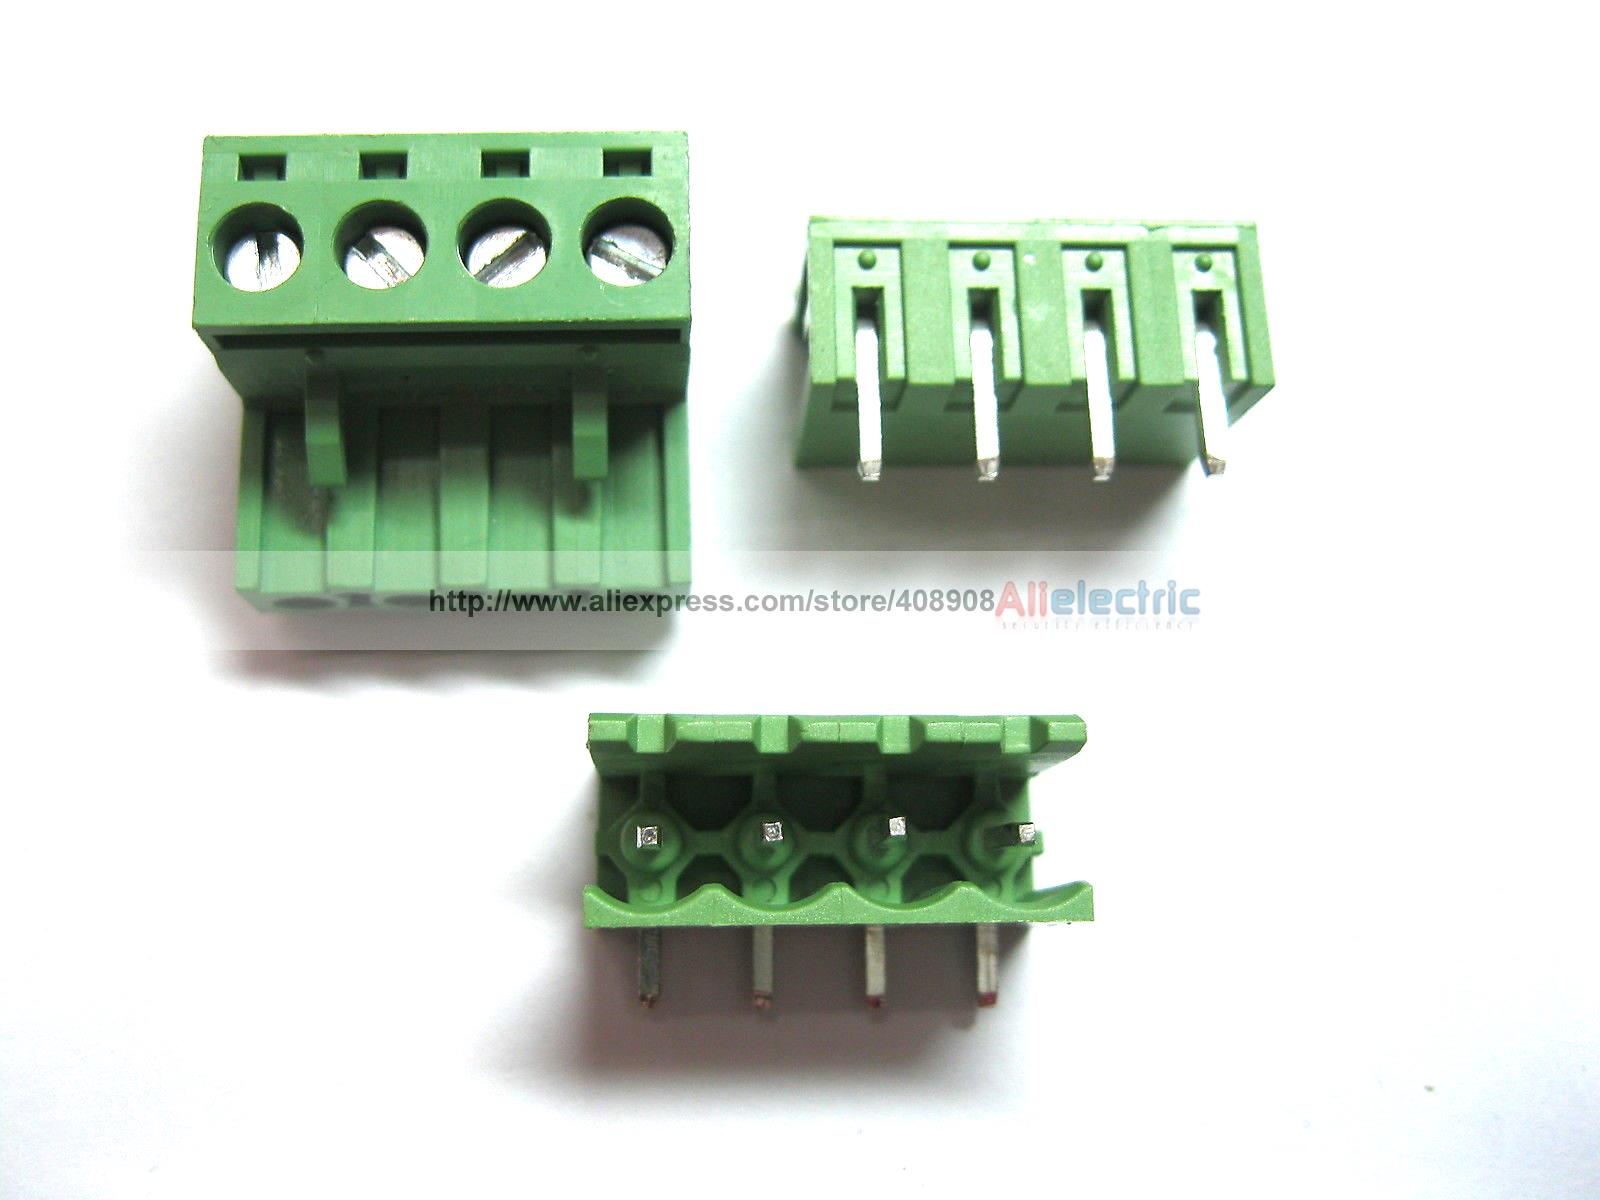 50 Pcs 5.08mm Angle 4 Pin Screw Terminal Block Connector Pluggable Type Green 30 pcs 5 08mm angle 16 pin screw terminal block connector pluggable type green